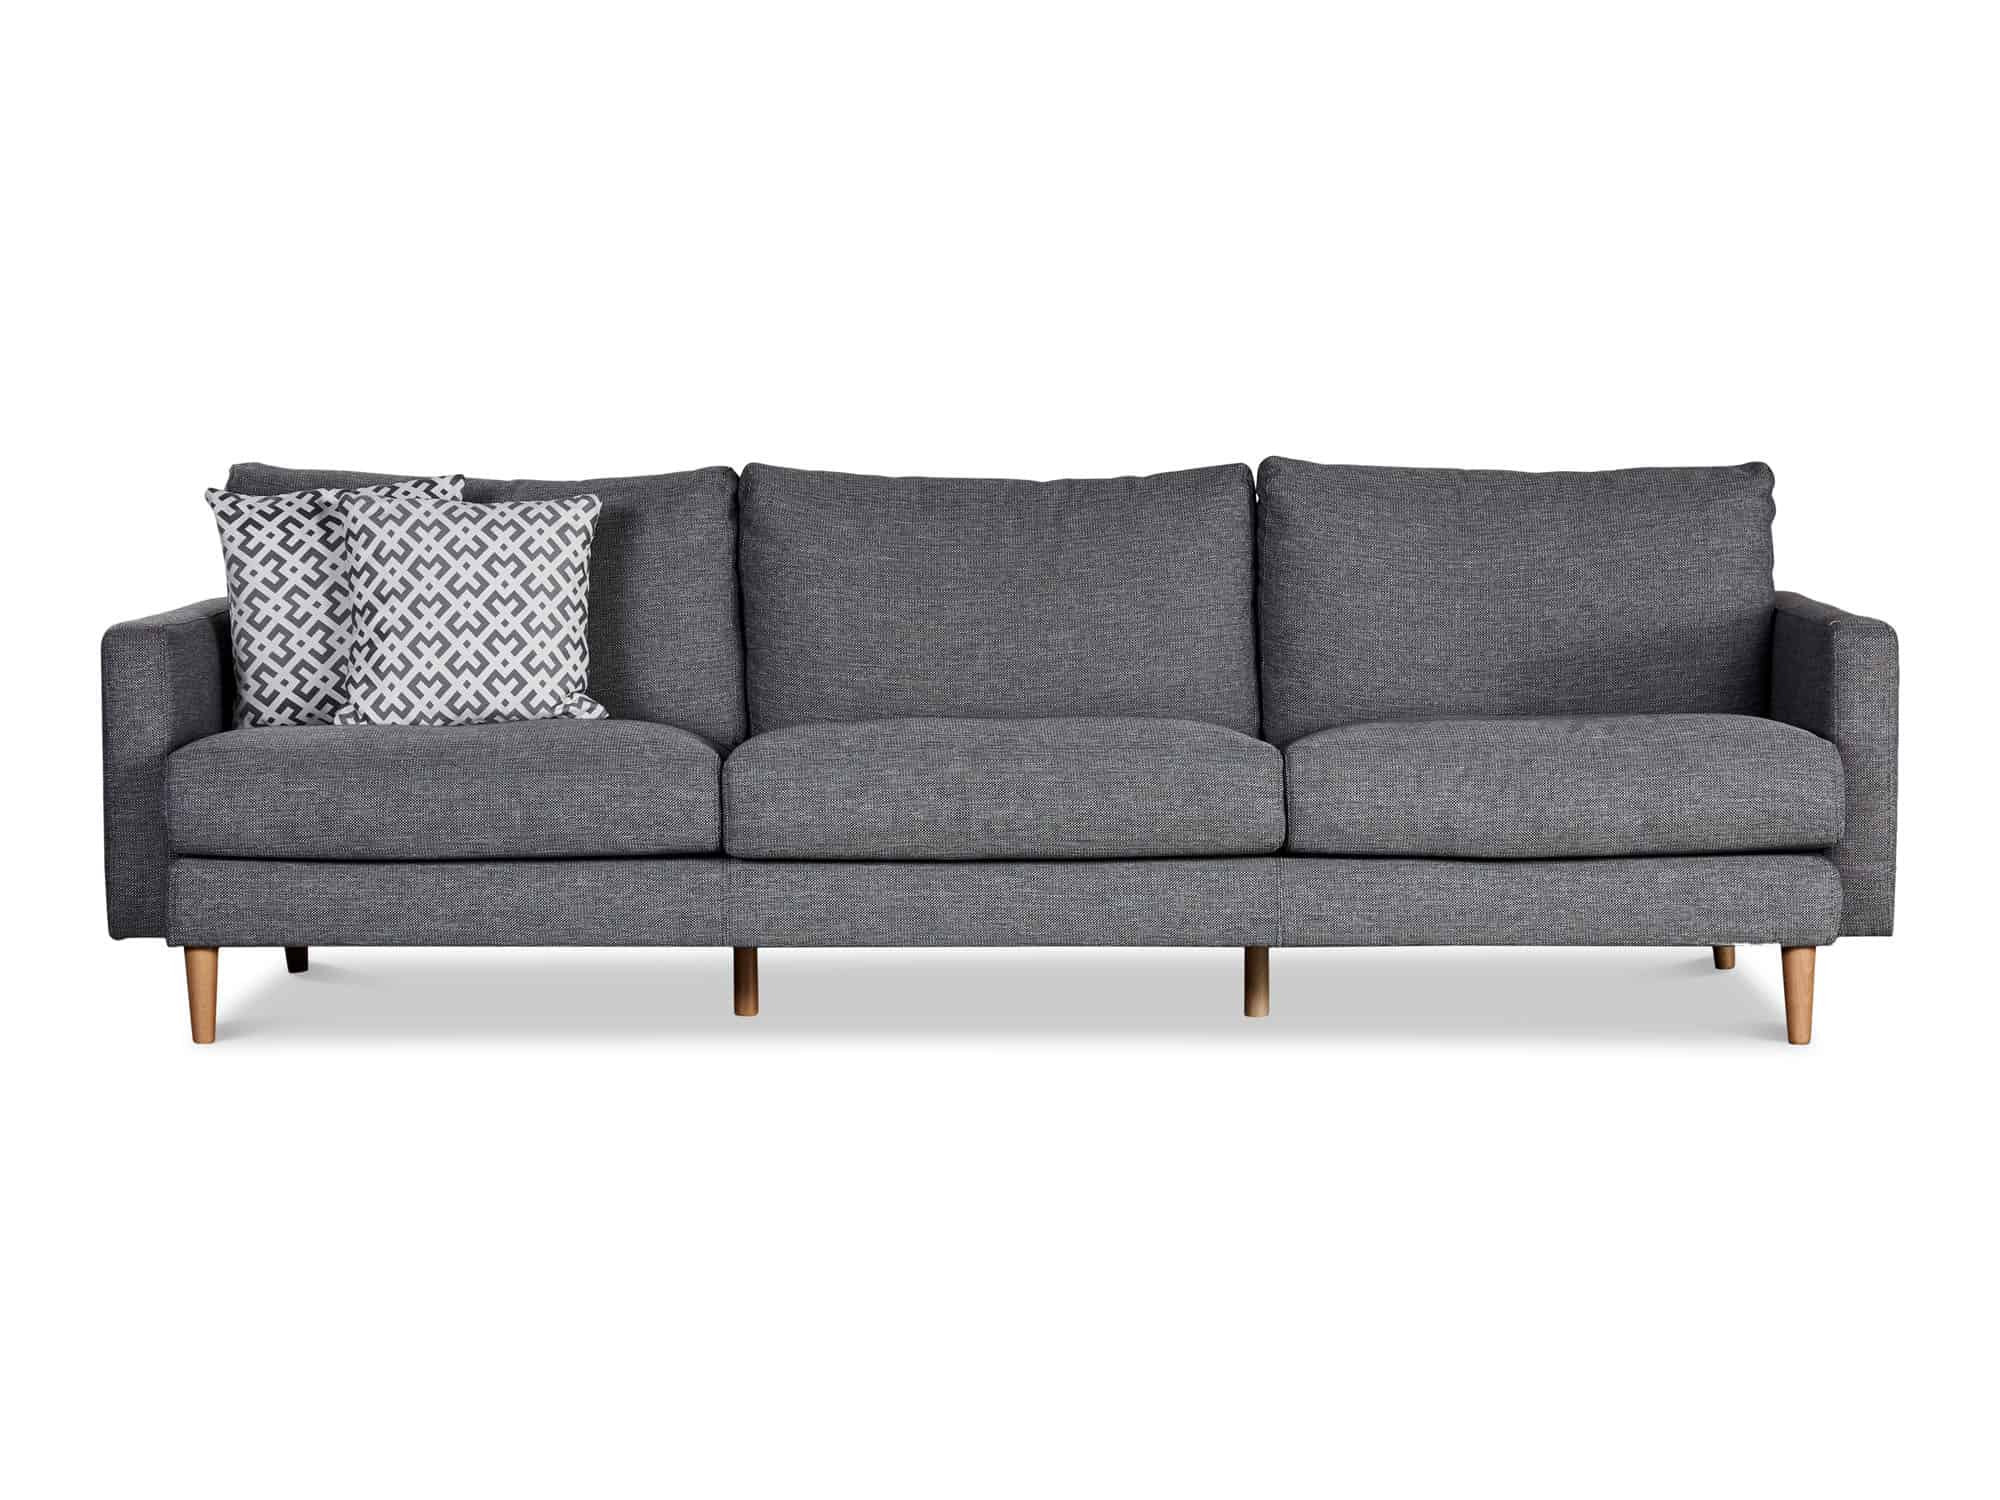 Hindmarsh_3.5_seater_sofa_fabric_with_cushions_side